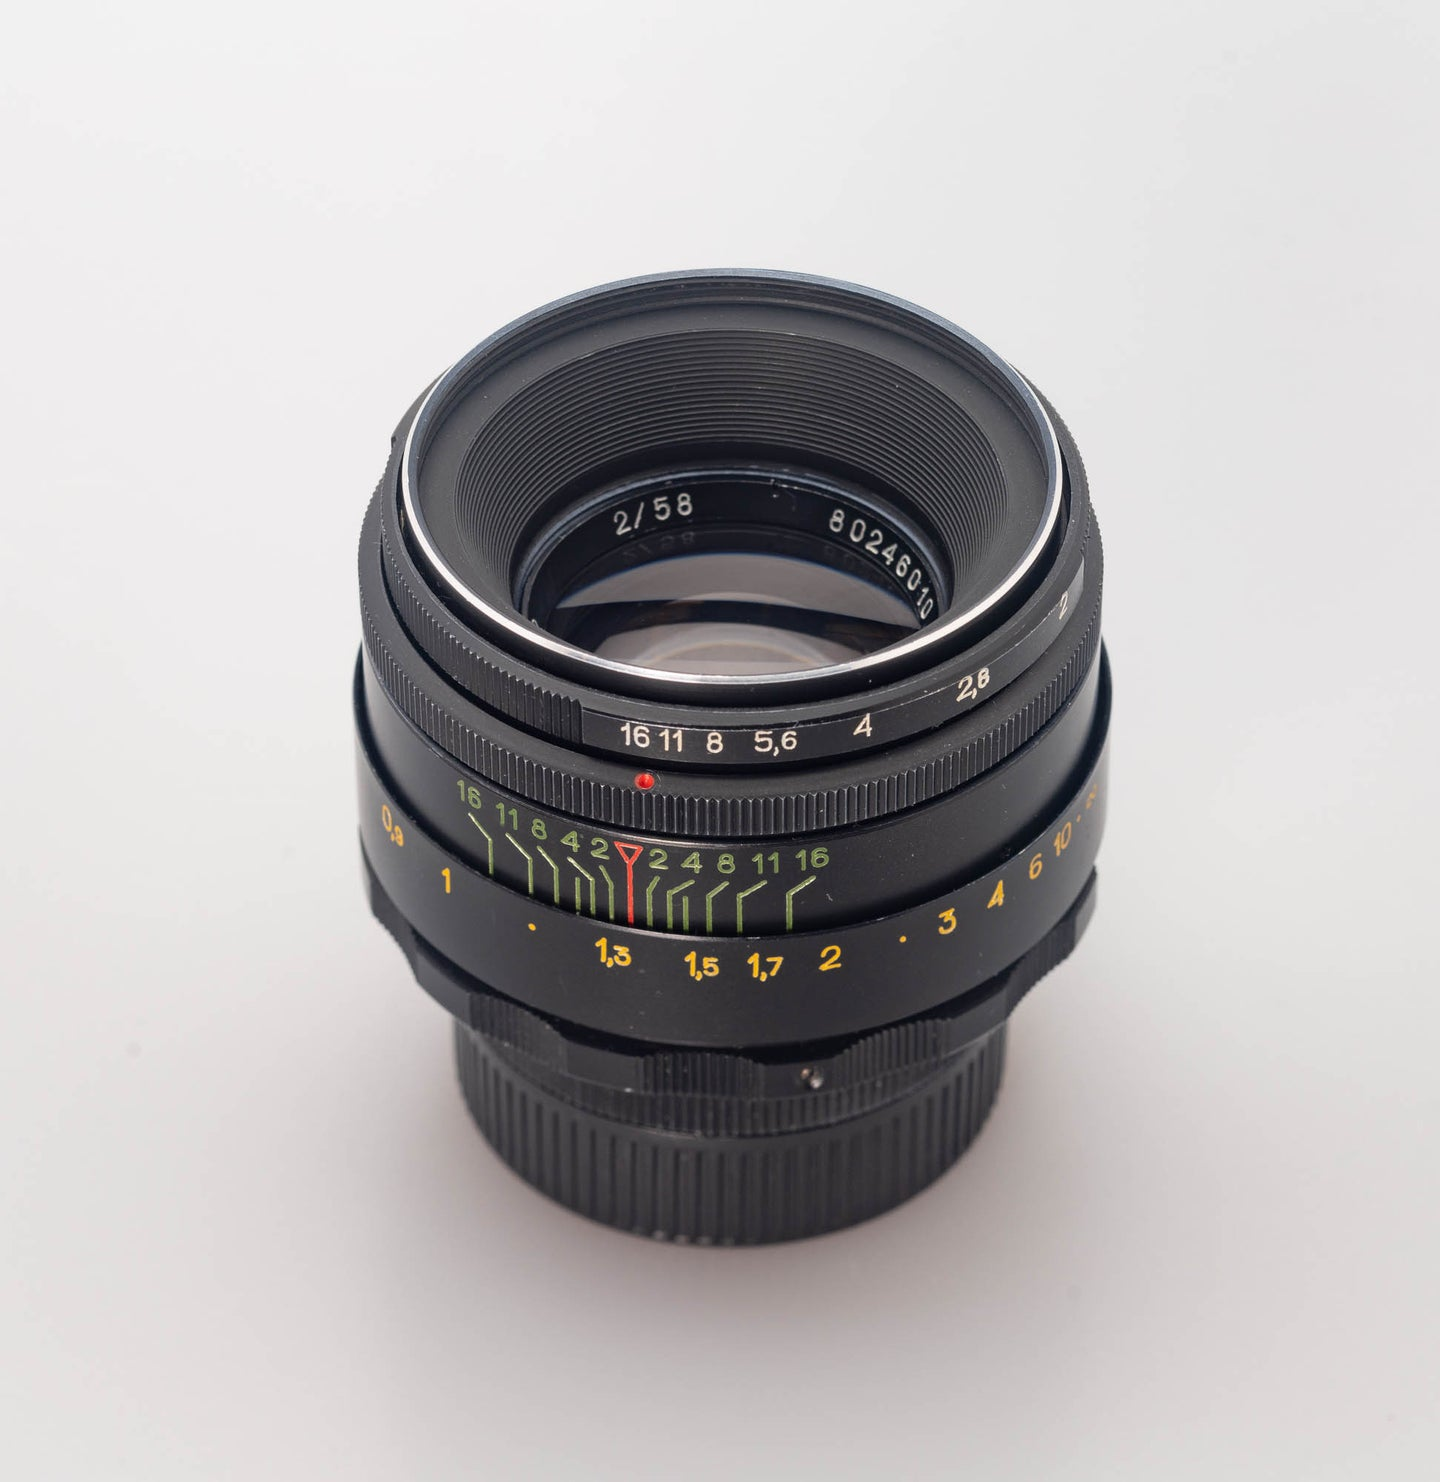 Classic Vintage Helios 44-2 Lens (used but CLA'd)